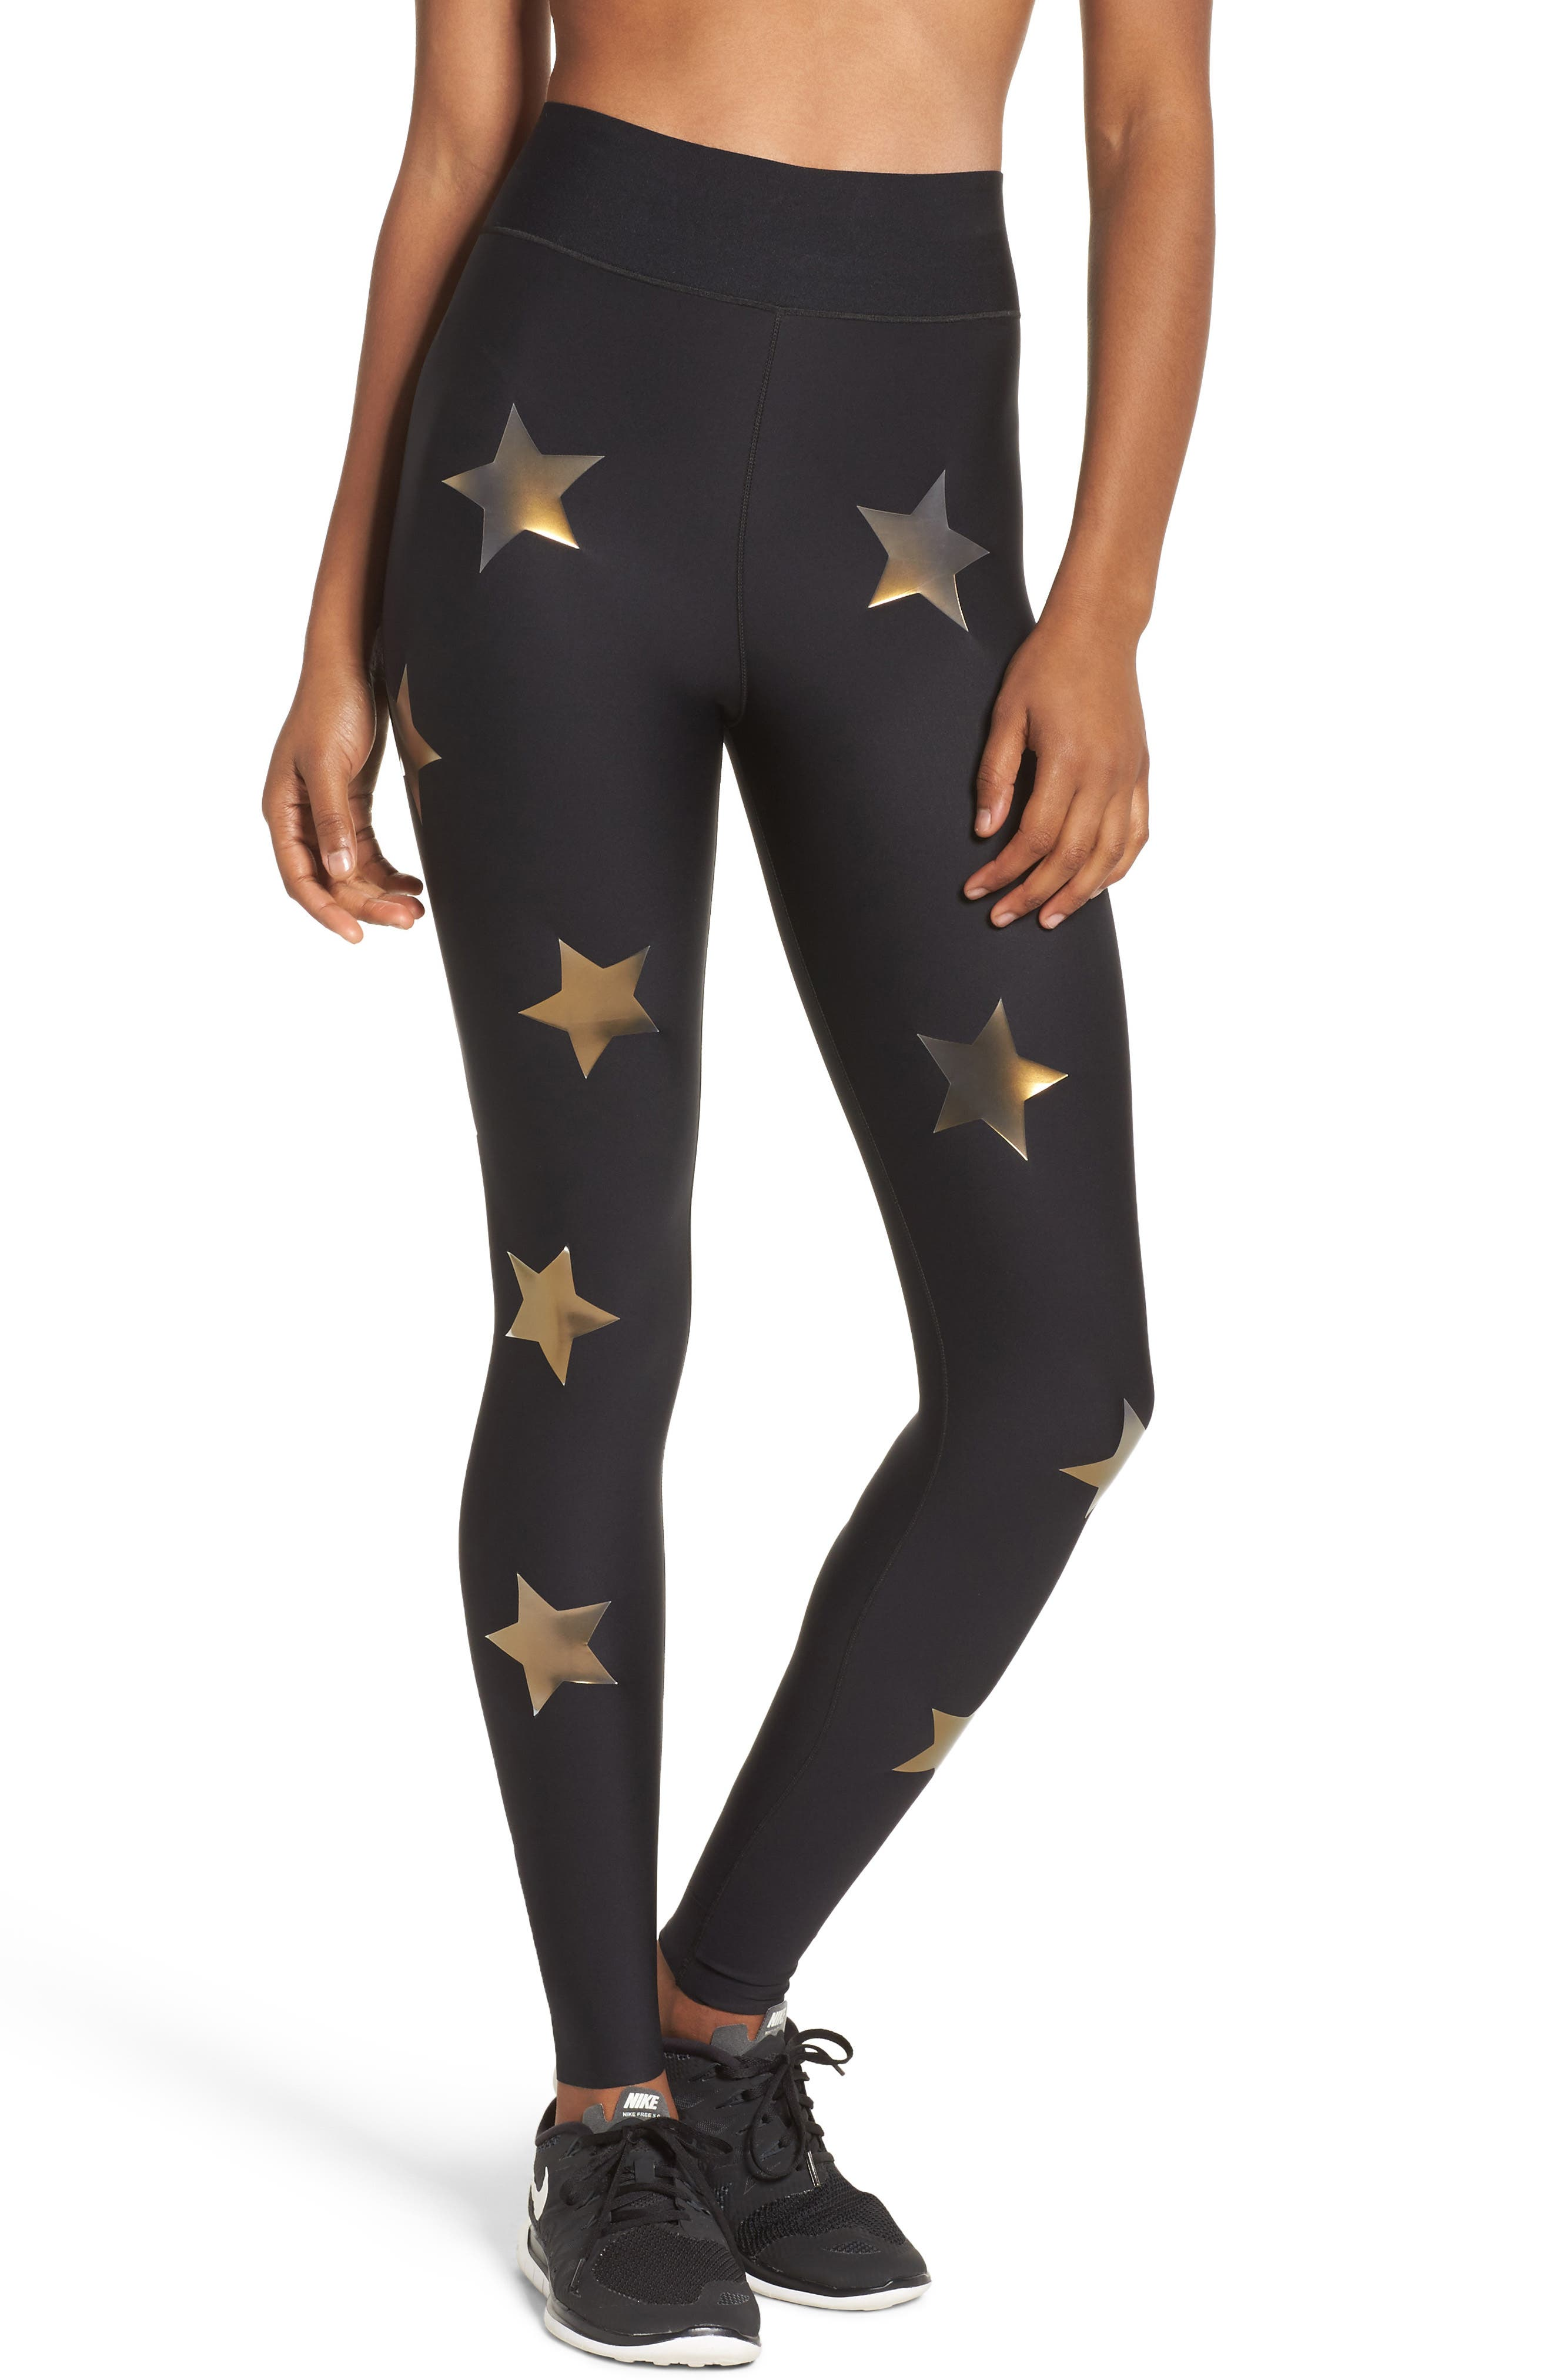 Ultracor Lux Knockout Leggings